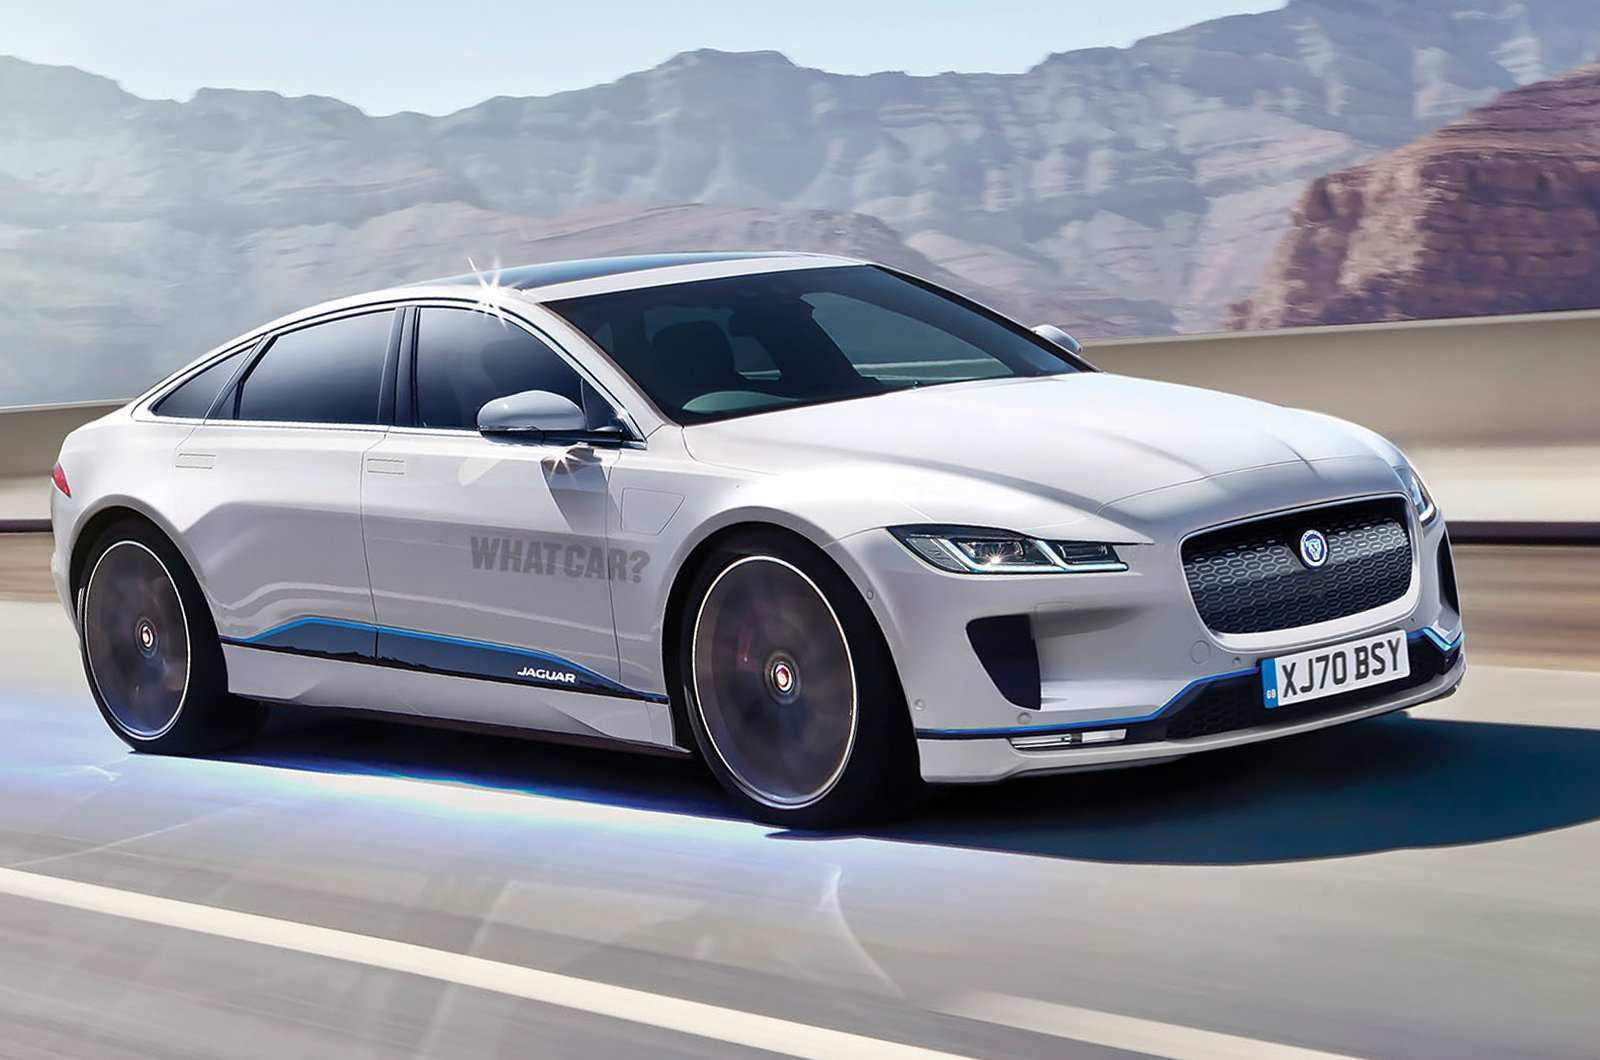 38 A Jaguar Neue Modelle 2020 Model